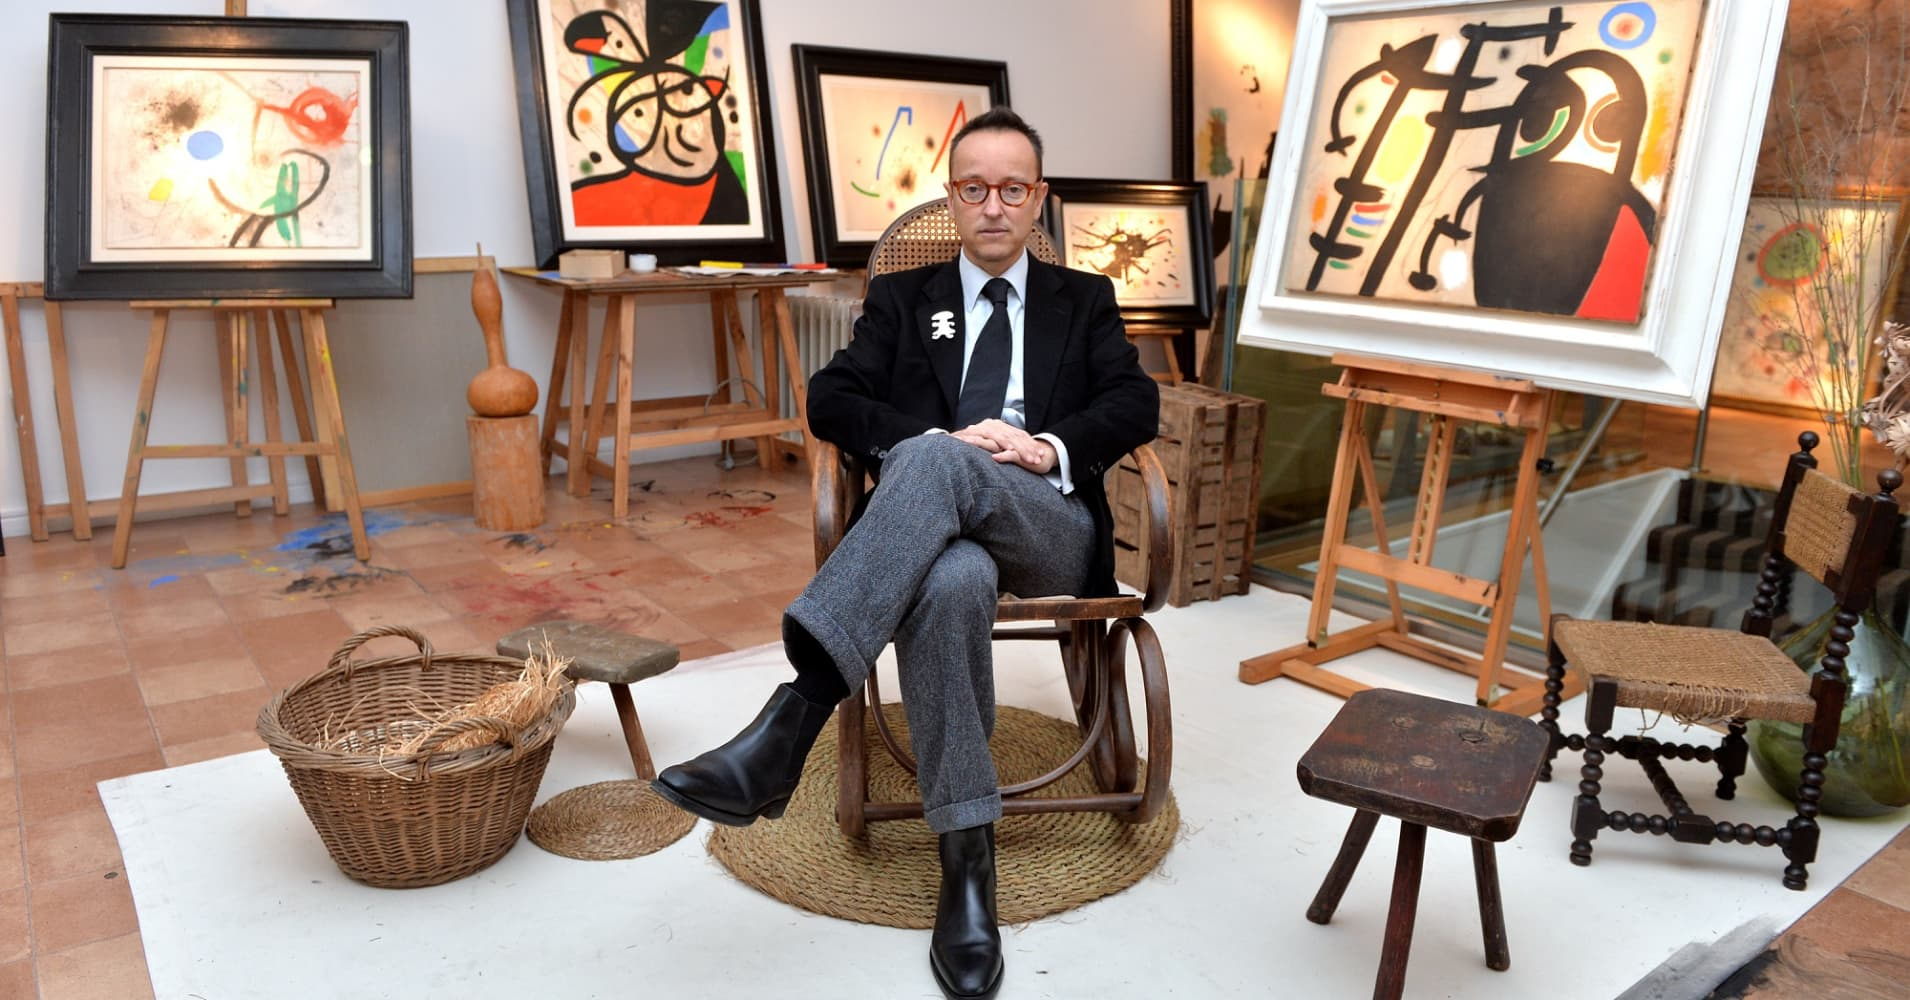 The grandson of Spanish artist Joan Miro, Joan Punyet Miro at a recreation of the studio of the painter Joan Miro